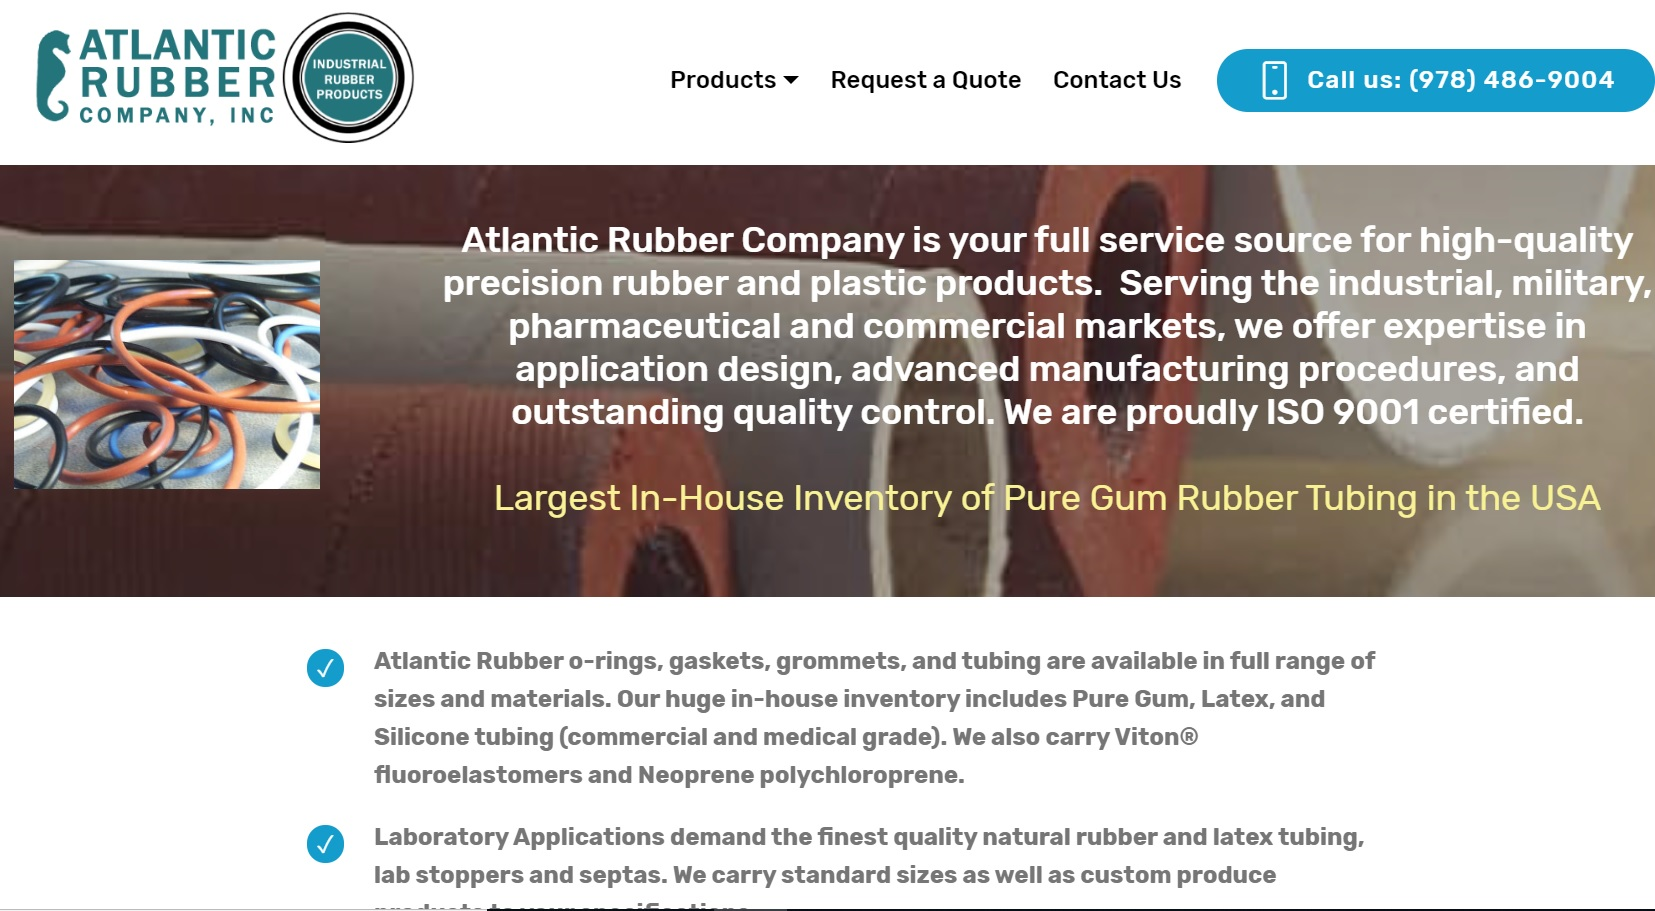 Atlantic Rubber Company, Inc.